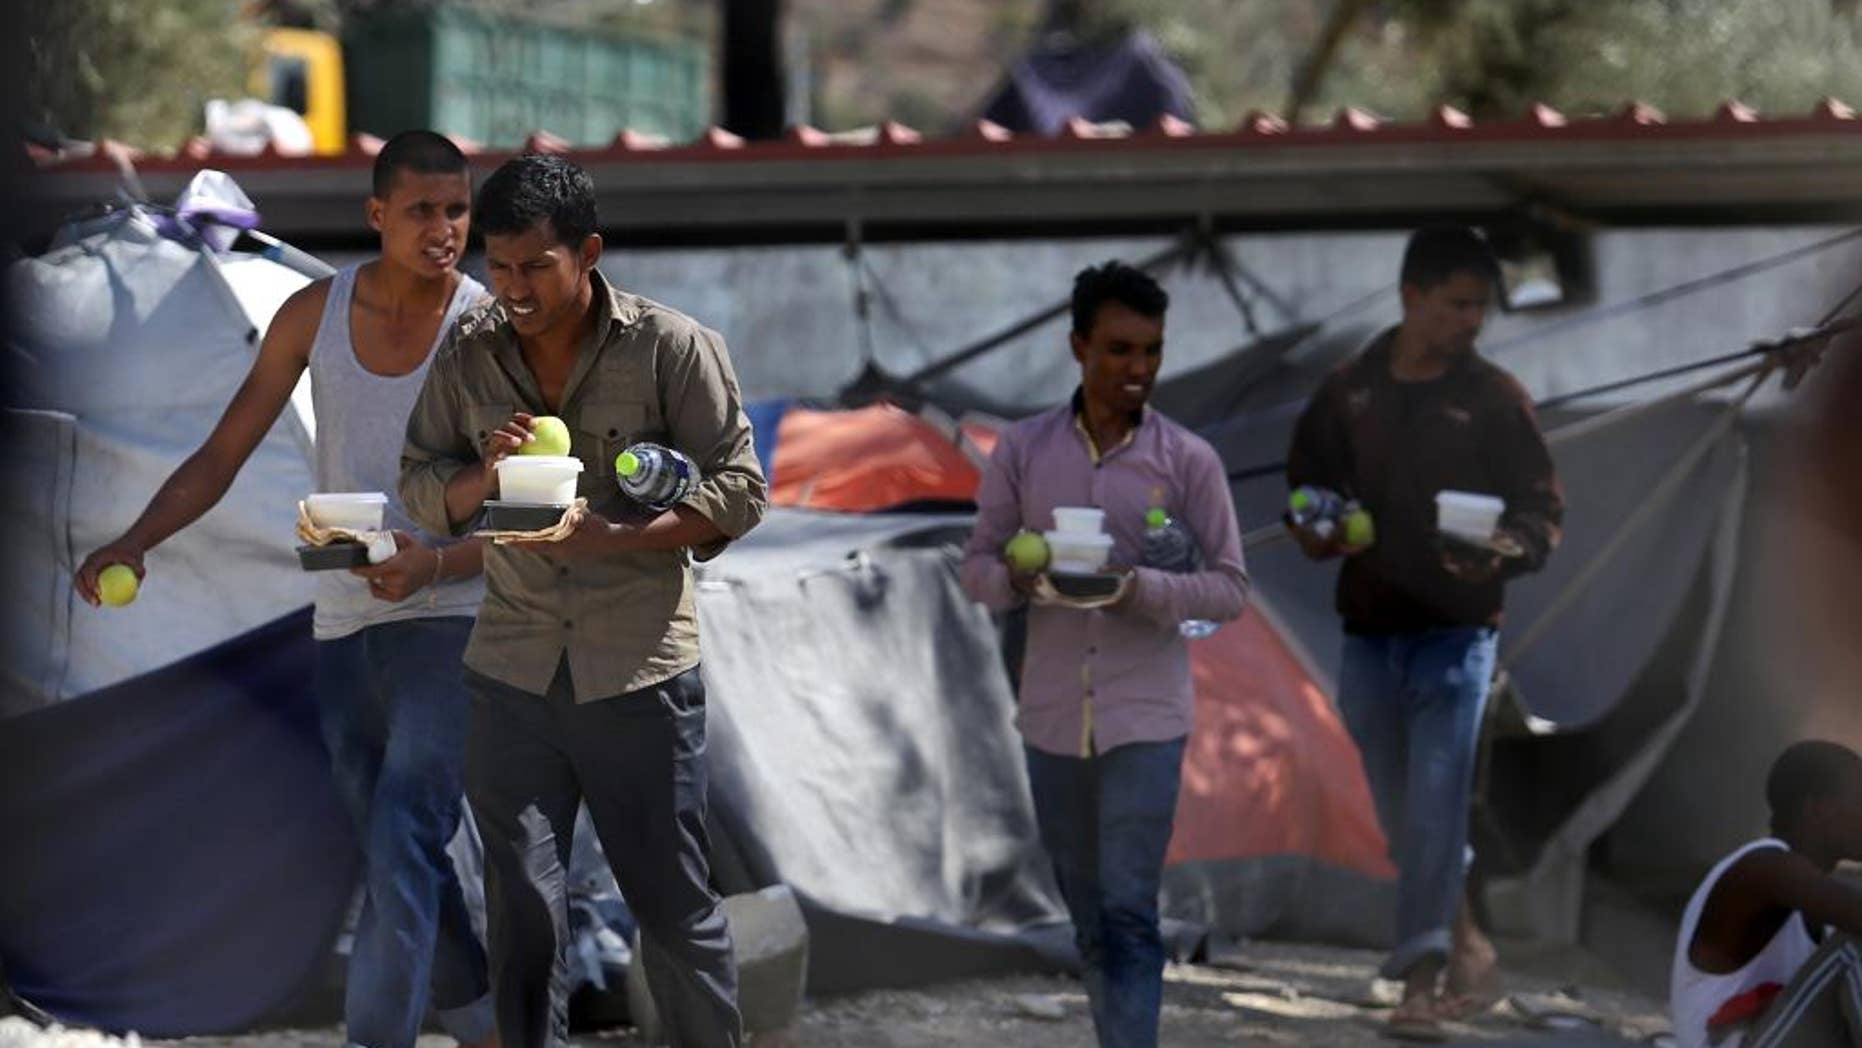 Migrants carry food at the Moria refugee camp on the northeastern Greek island of Lesbos, on Tuesday, Sept. 20, 2016, after a fire gutted the camp following protests at the camp.  Authorities of the island of Lesbos are calling for the immediate evacuation of thousands of refugees to the Greek mainland, following the fire and nine migrants suspected of starting the blaze have been arrested, authorities said Tuesday. (Dimitris Tosidis/InTime News via AP)